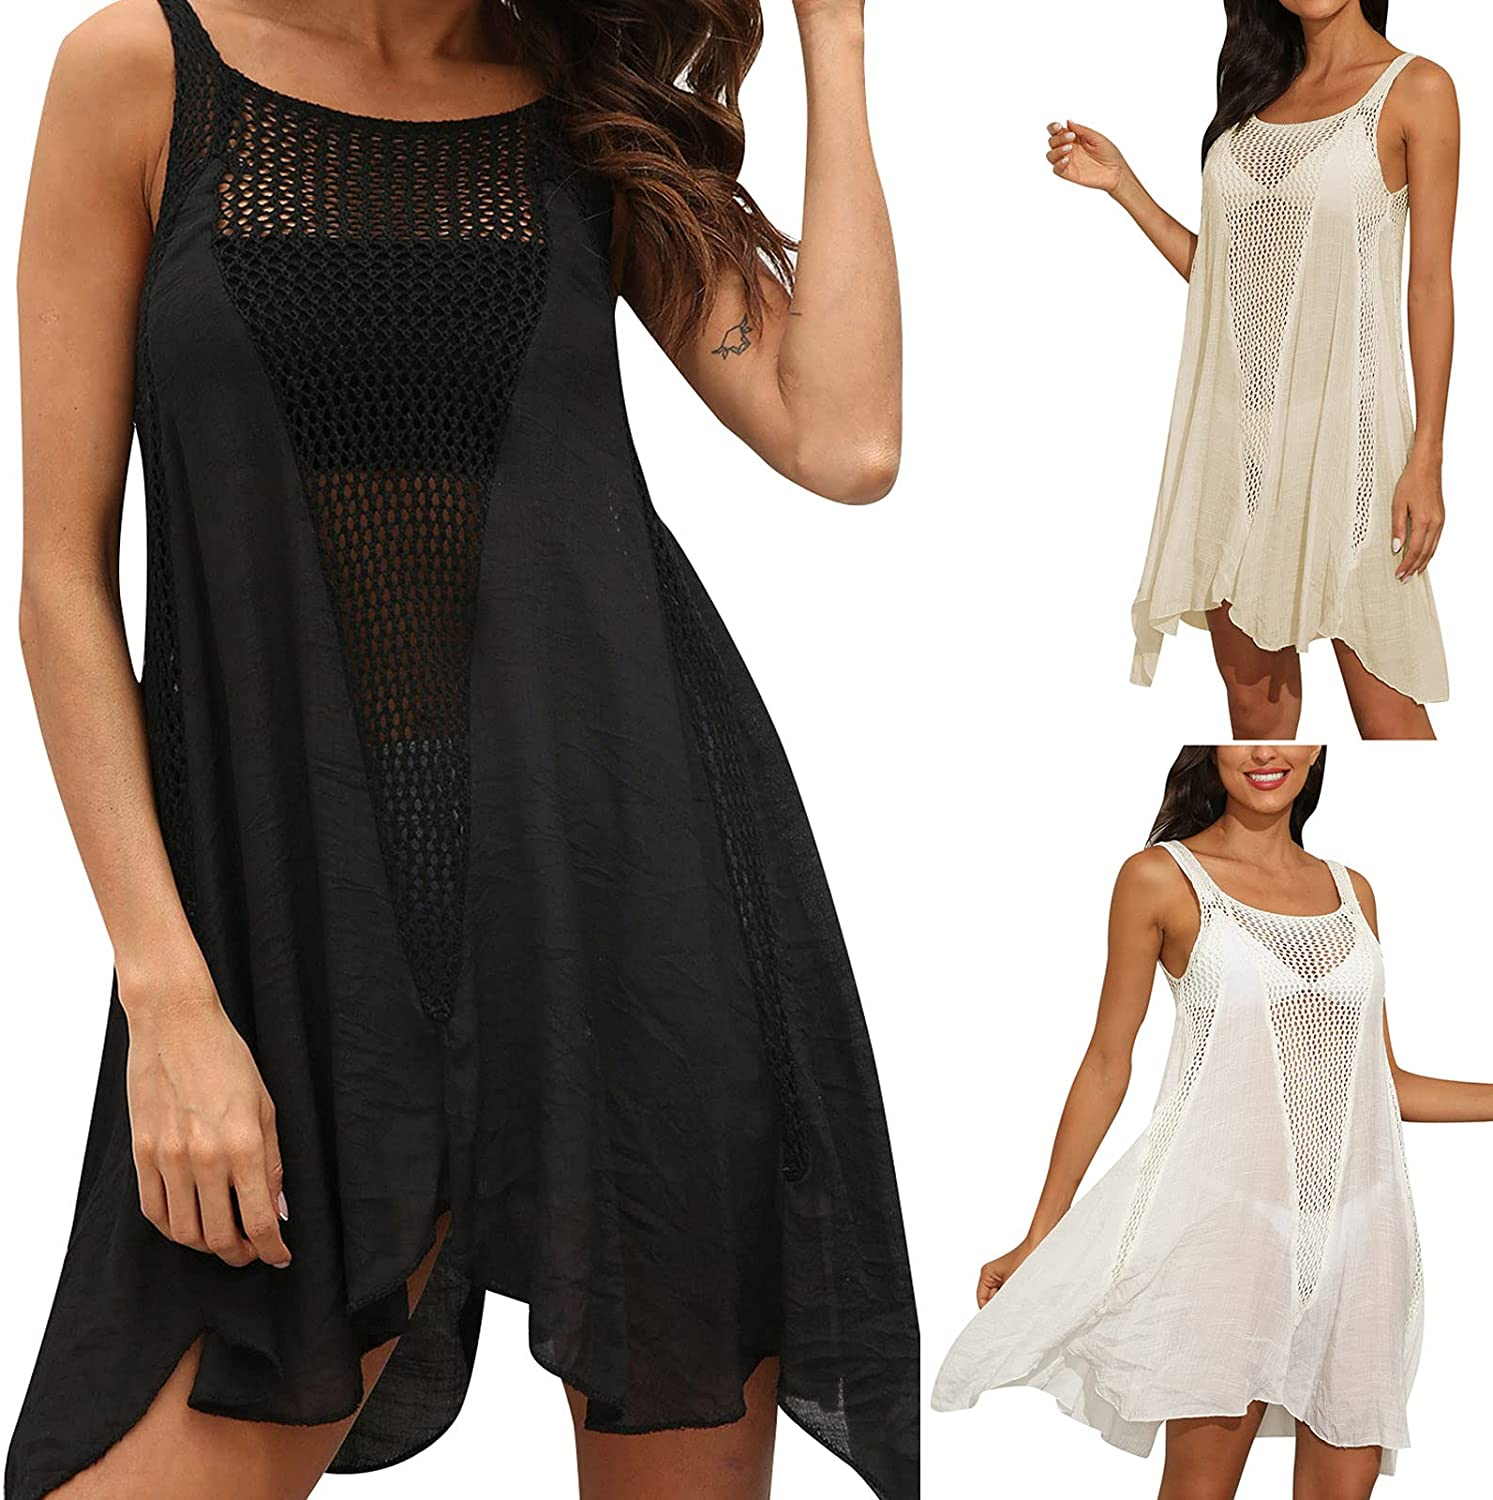 Womens Summer Solid Color Halter Strapless Hollow Out Beach Dress Swimsuit Bathing Suit Swimwear Crochet Cover Up Dress